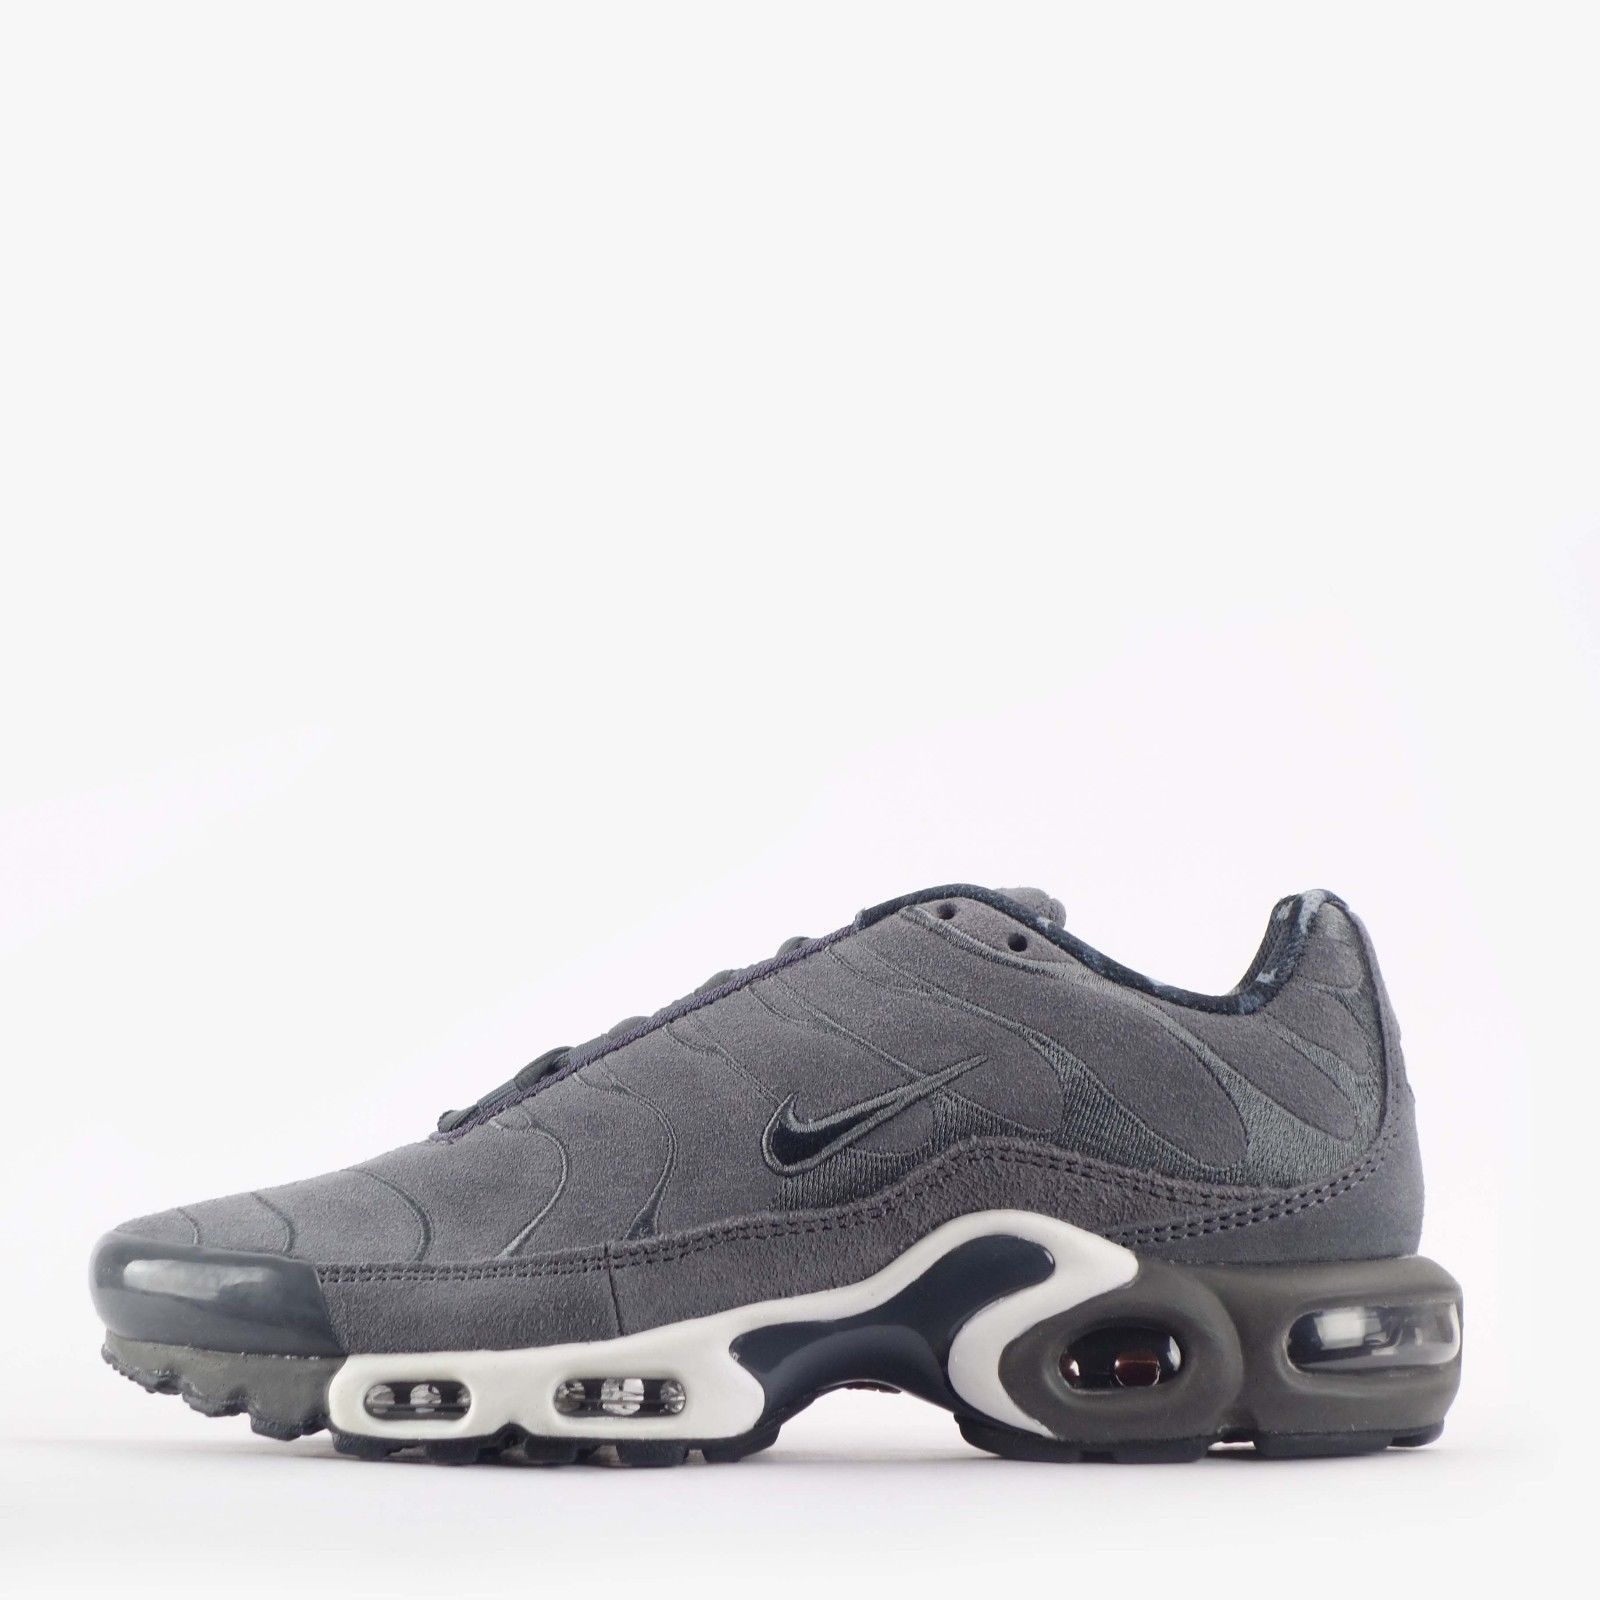 3a7ebc332280ca Nike Air Max Plus Premium Tuned TN Suede Mens Shoes In Dark Grey in  Clothes, Shoes & Accessories, Men's Shoes, Trainers | eBay